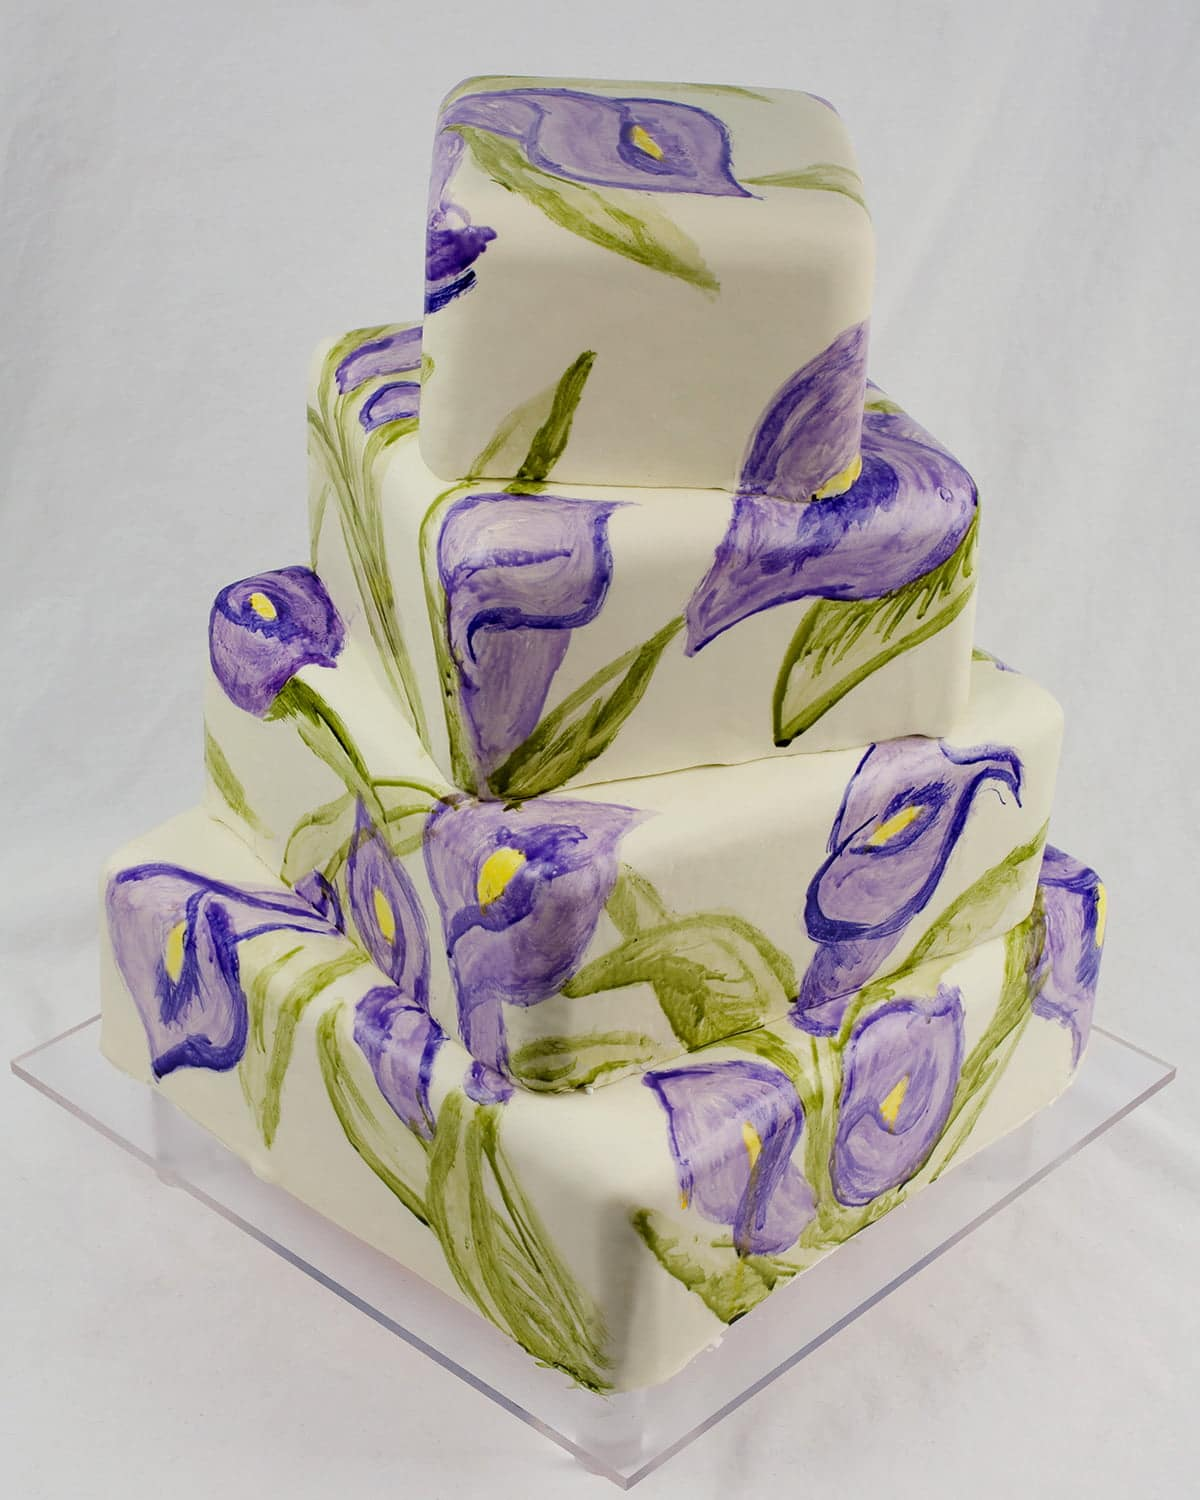 A 4 level square cake. Each layer is covered in smooth, sage green fondant, and offset from the layered above and beneath it. The entire cake is covered in hand painted calla lilies in purples and greens.